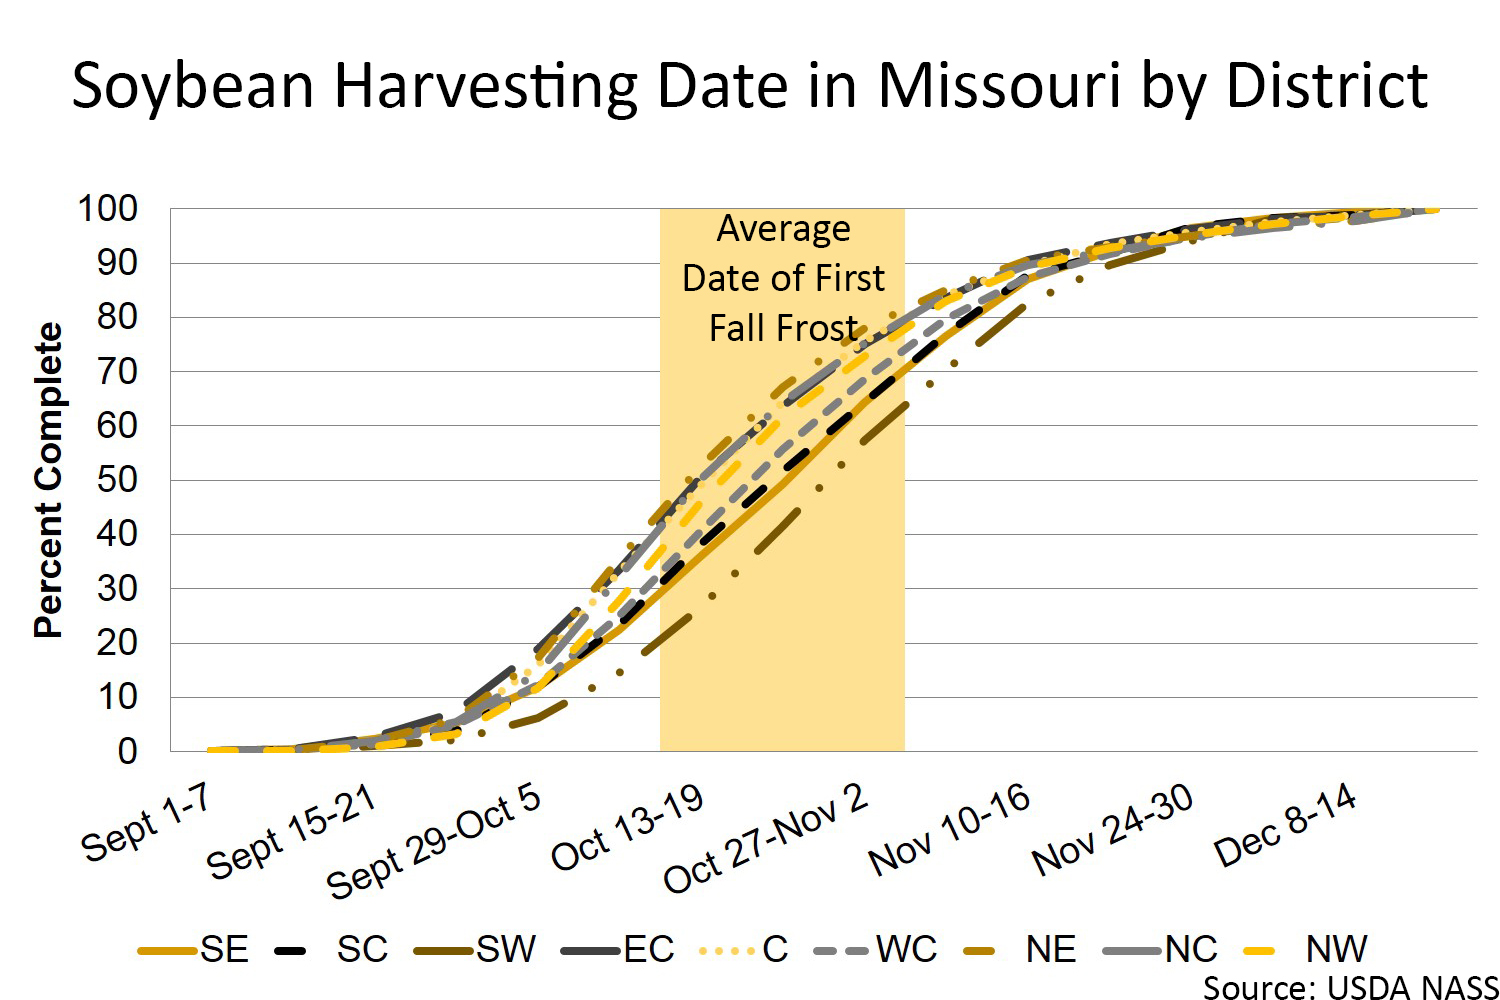 Missouri soybean harvesting date by district chart